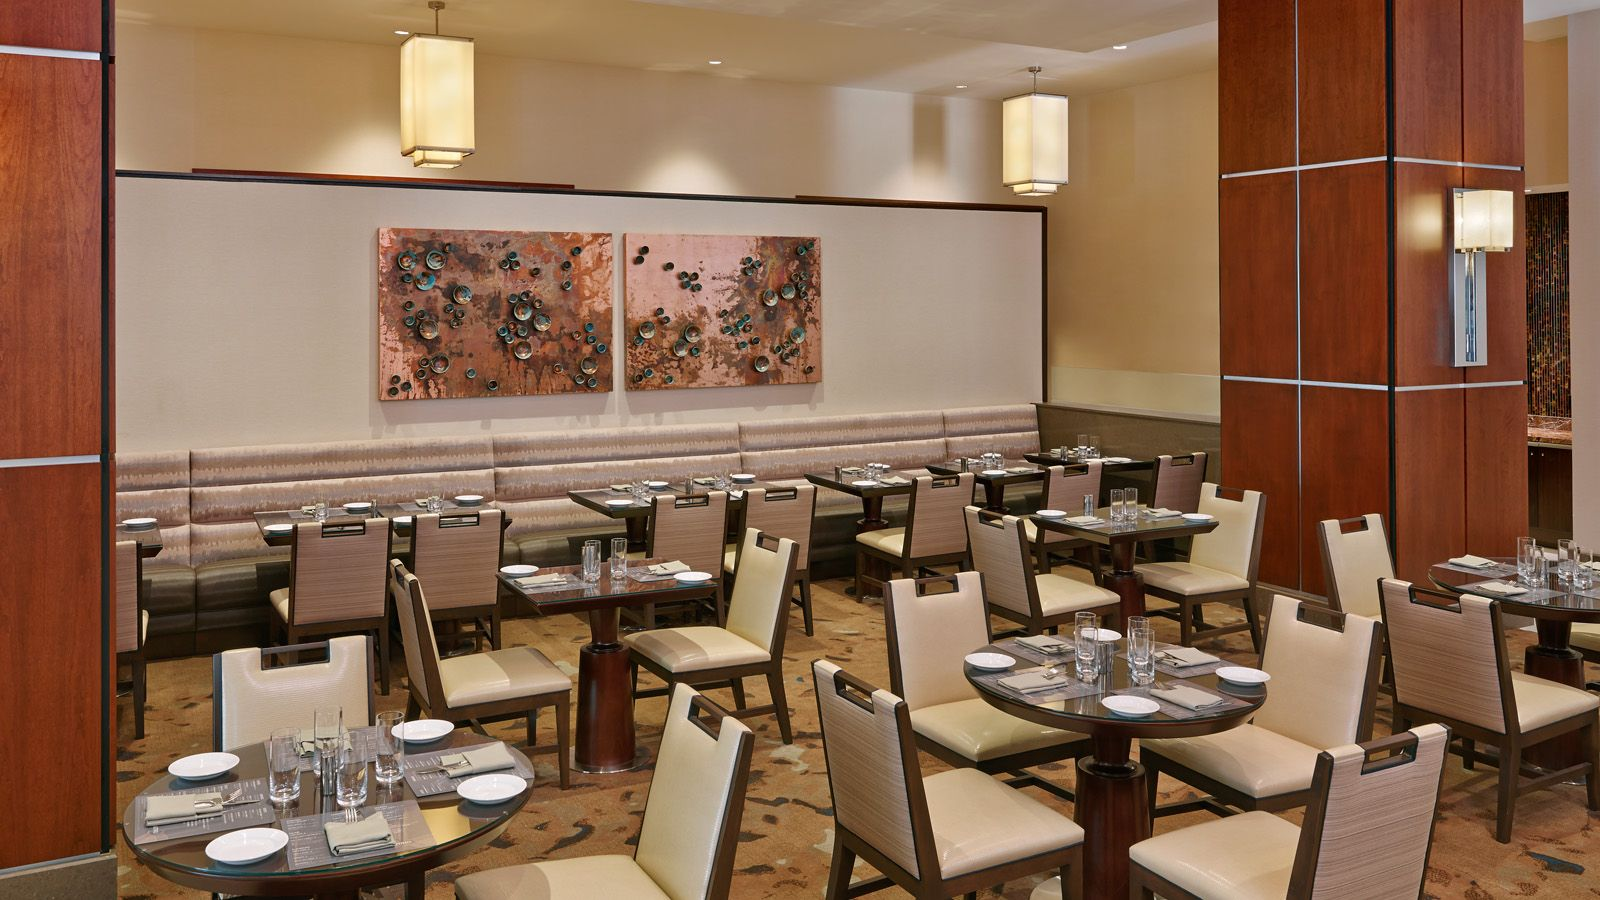 Arlington Restaurants - Nutrio Restaurant at The Westin Crystal City